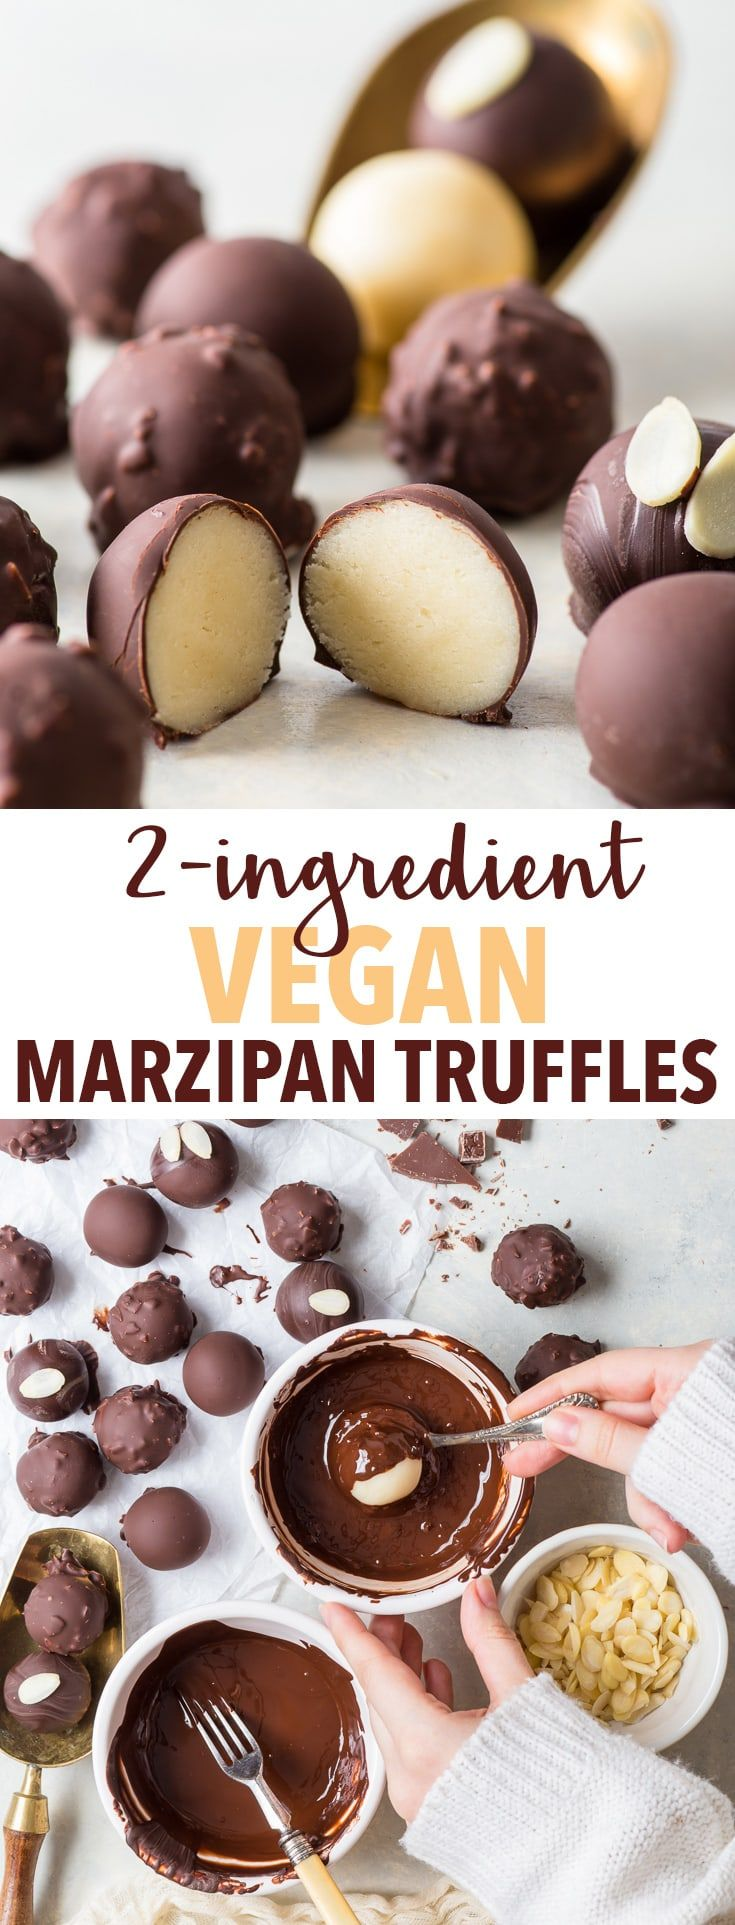 2-Ingredient Vegan Marzipan Truffles (Gluten Free, Dairy Free, Vegan) - 5 minutes is all it takes to make these delicious vegan marzipan truffles. With only two ingredients, they couldn't be easier to prepare – but don't let the simplicity fool you. These bite-sized sweet treats pack a helluva flavour punch. Easy dessert recipes. Candy recipes. Quick dessert ideas. Vegan dessert recipes. Chocolate recipes. Chocolate truffle recipes. DIY gift ideas. #chocolate #marzipan #dairyfree